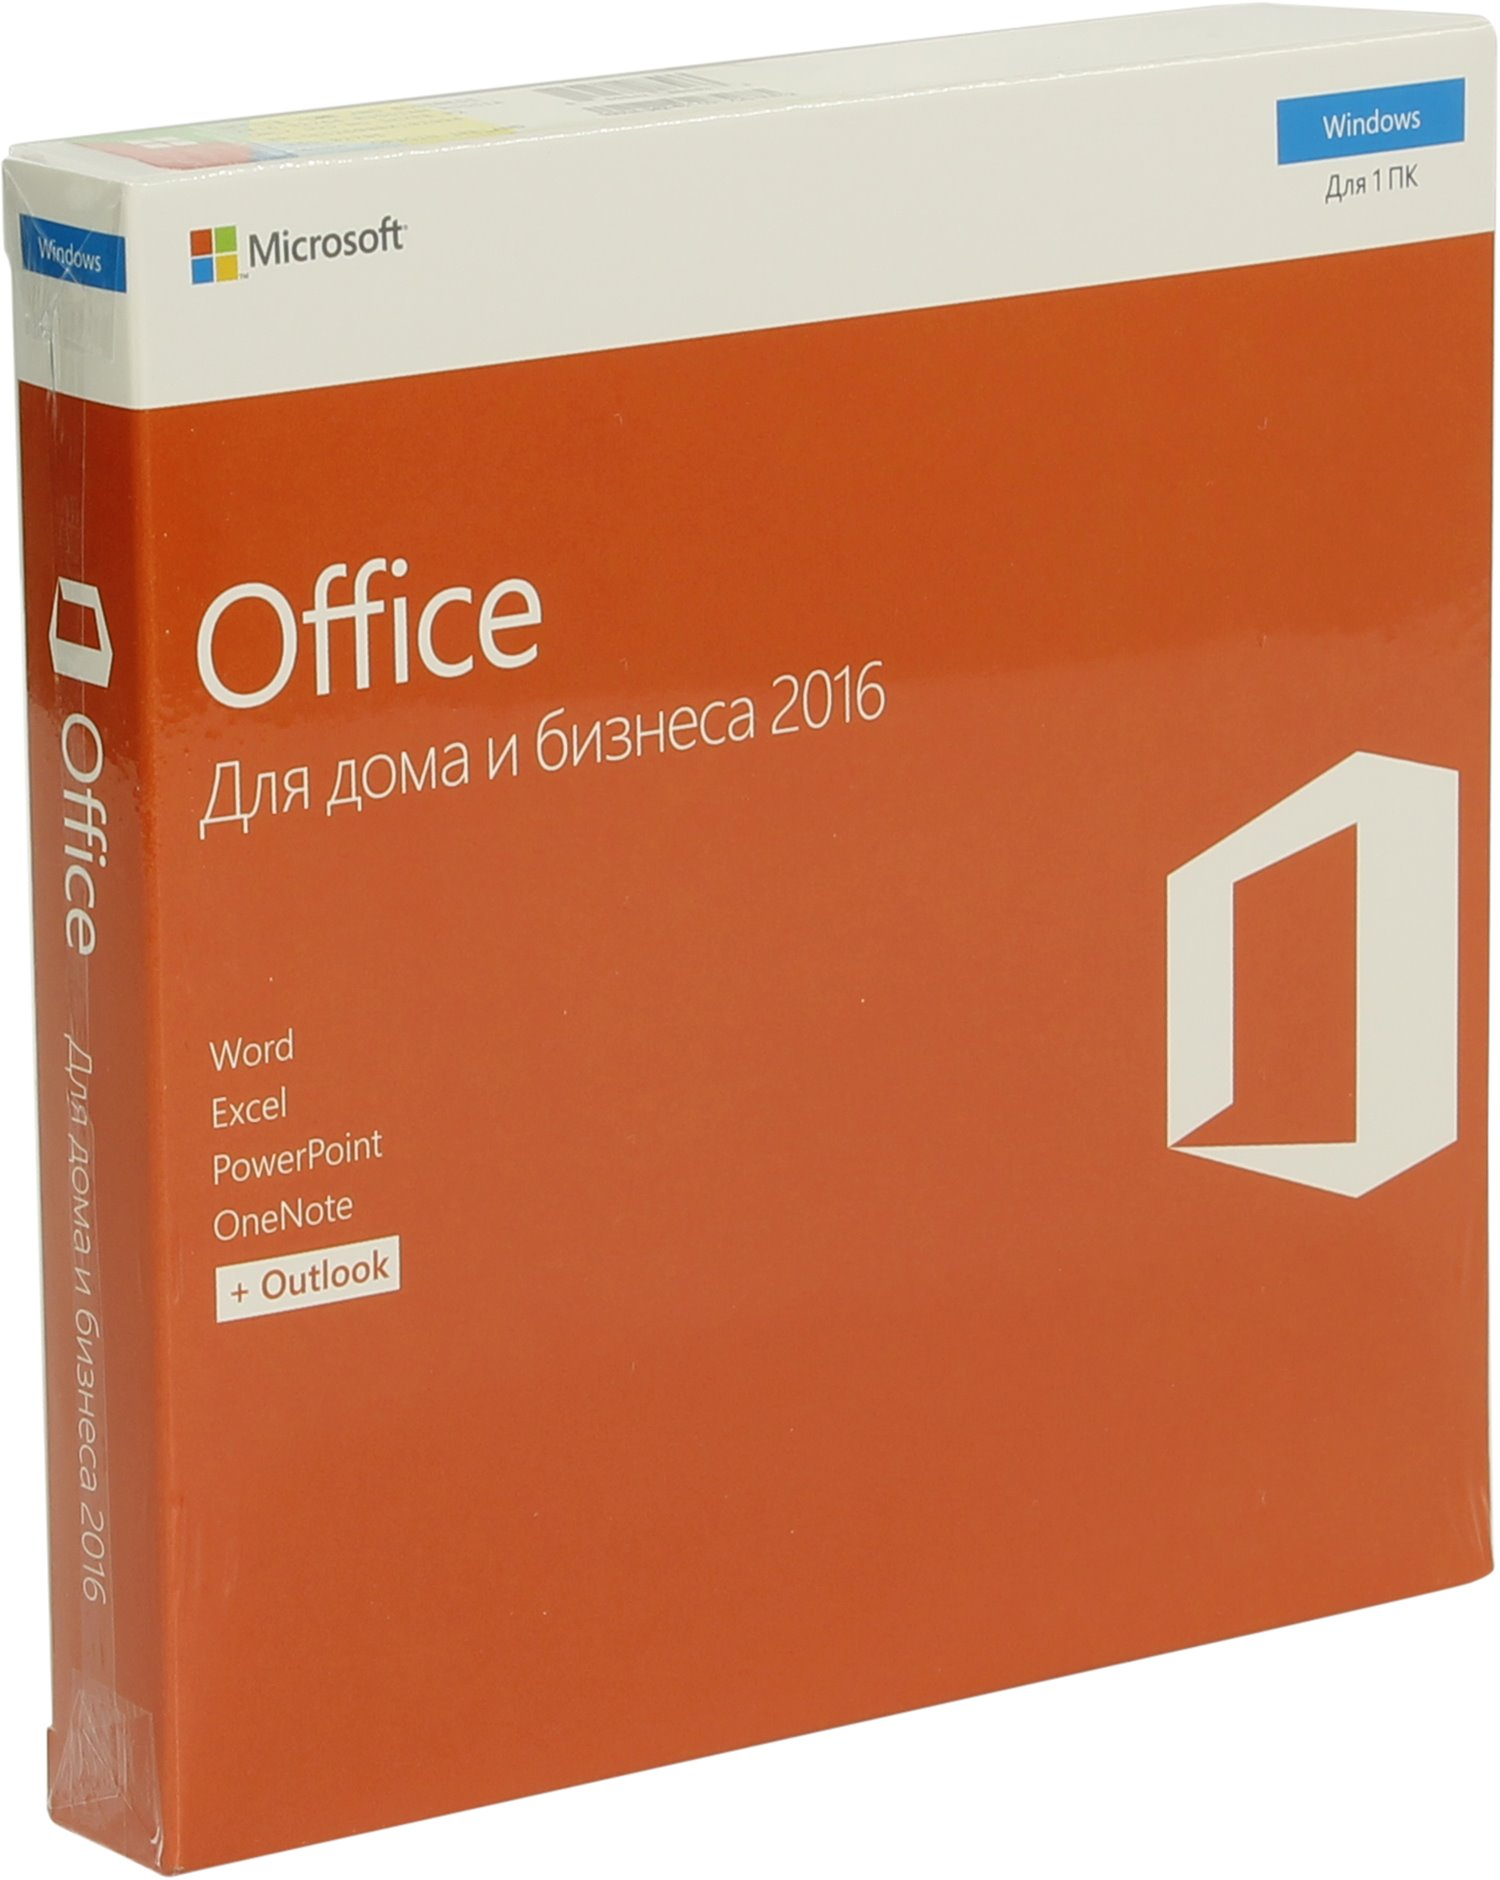 Купить Microsoft Office 2016 для дома и бизнеса (Home and Business 2016)  по доступной цене